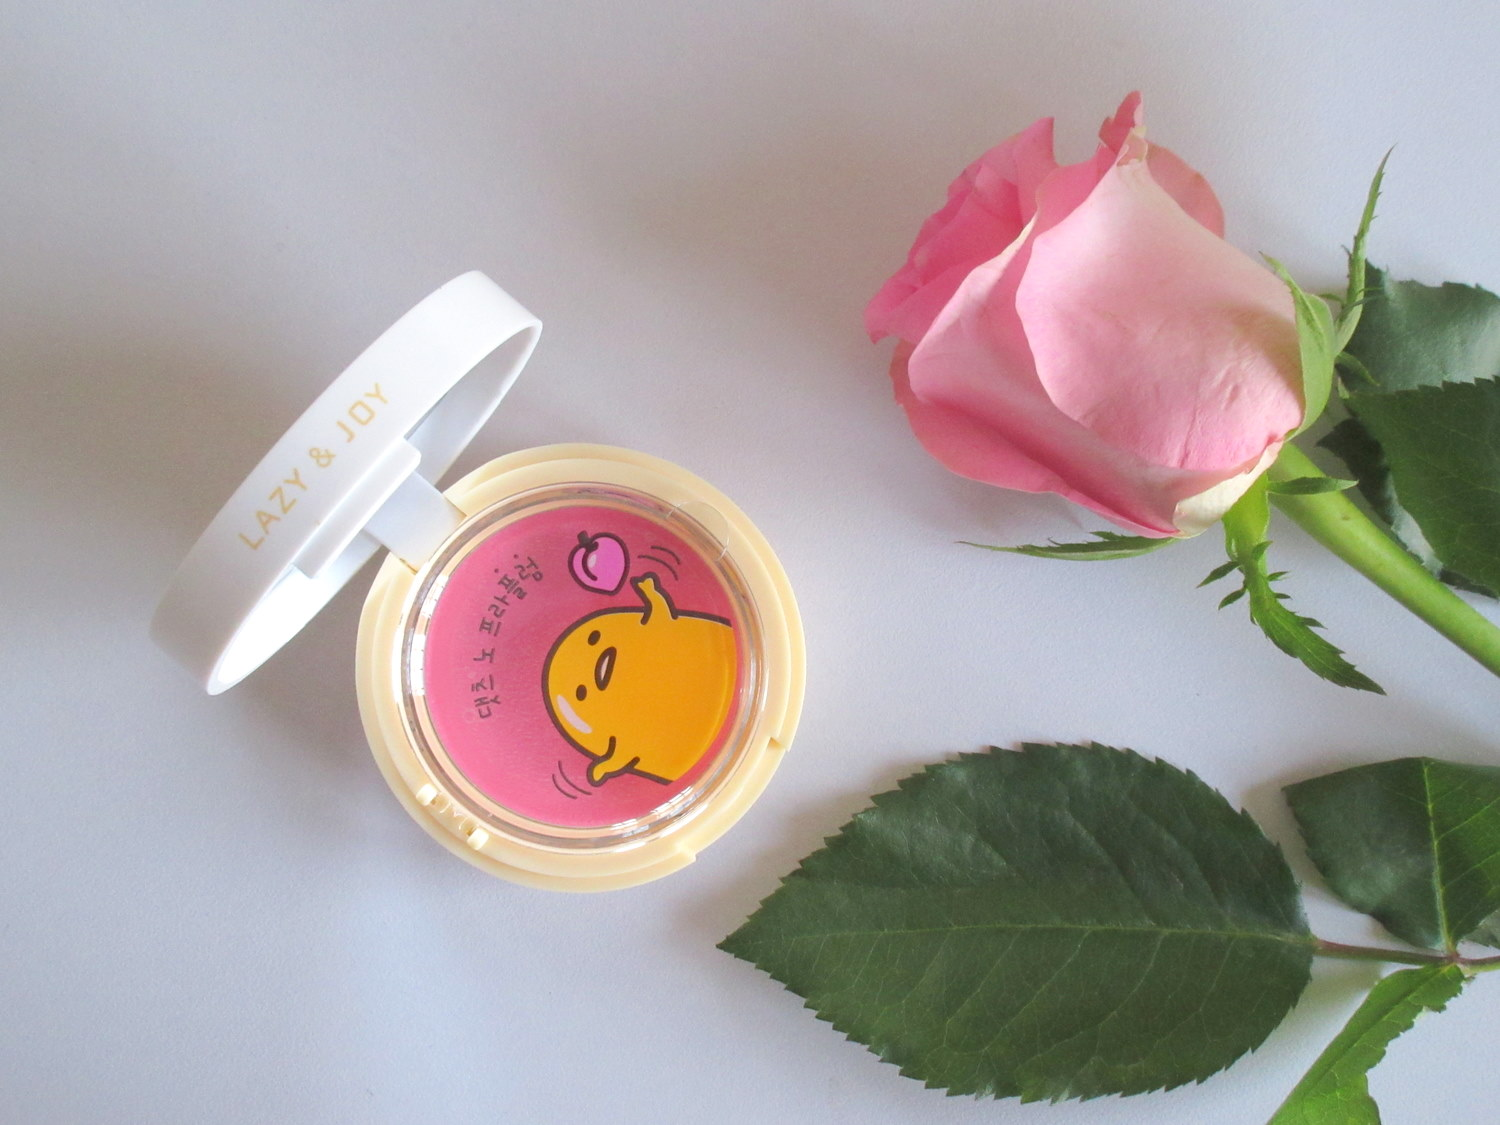 Holika Holika X Gudetama Jelly Dough Blusher in 'PK01 Plum Jelly'